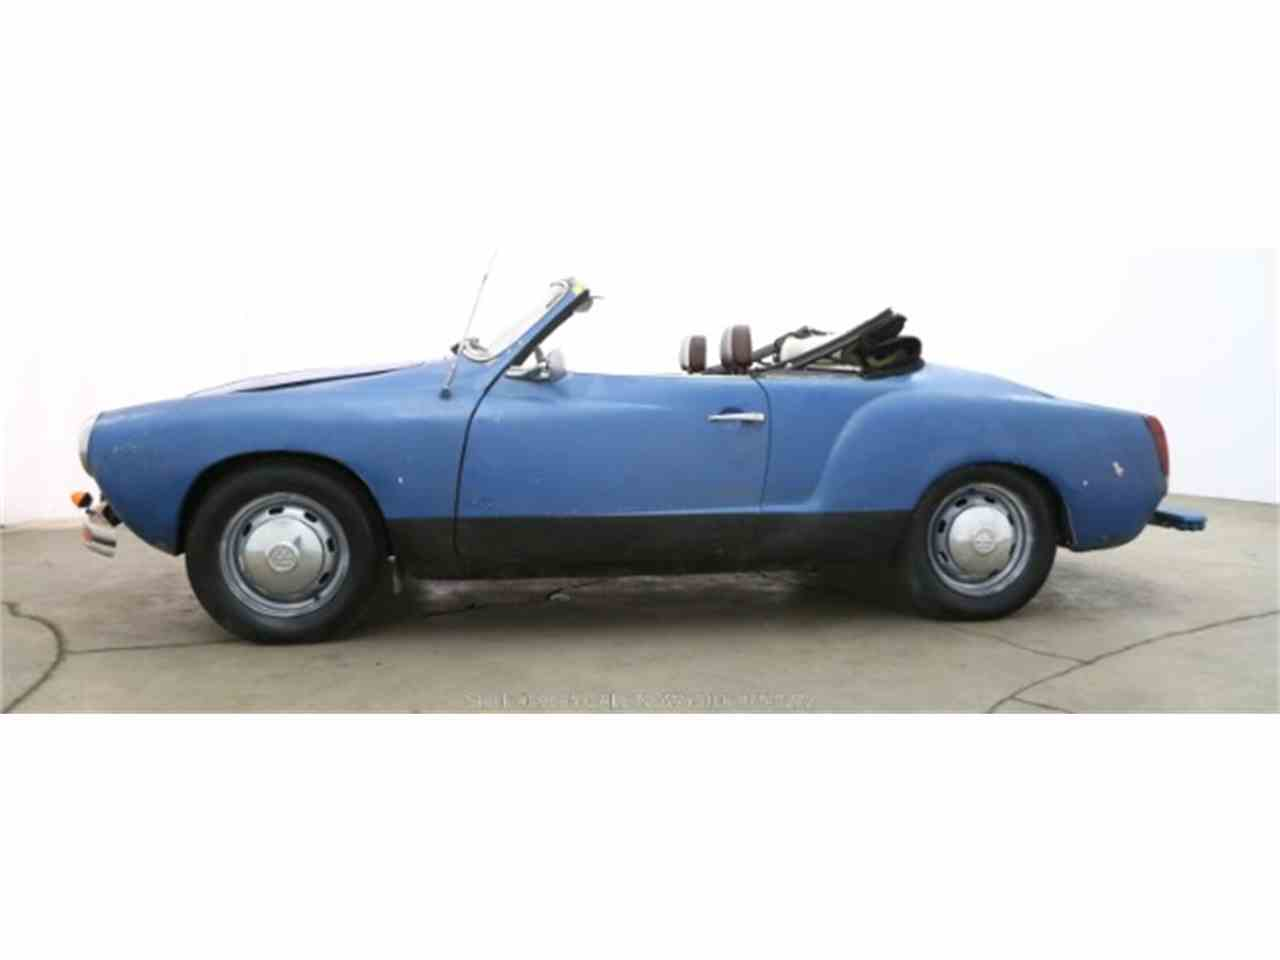 Large Picture of Classic '73 Volkswagen Karmann Ghia - $8,950.00 - NES9